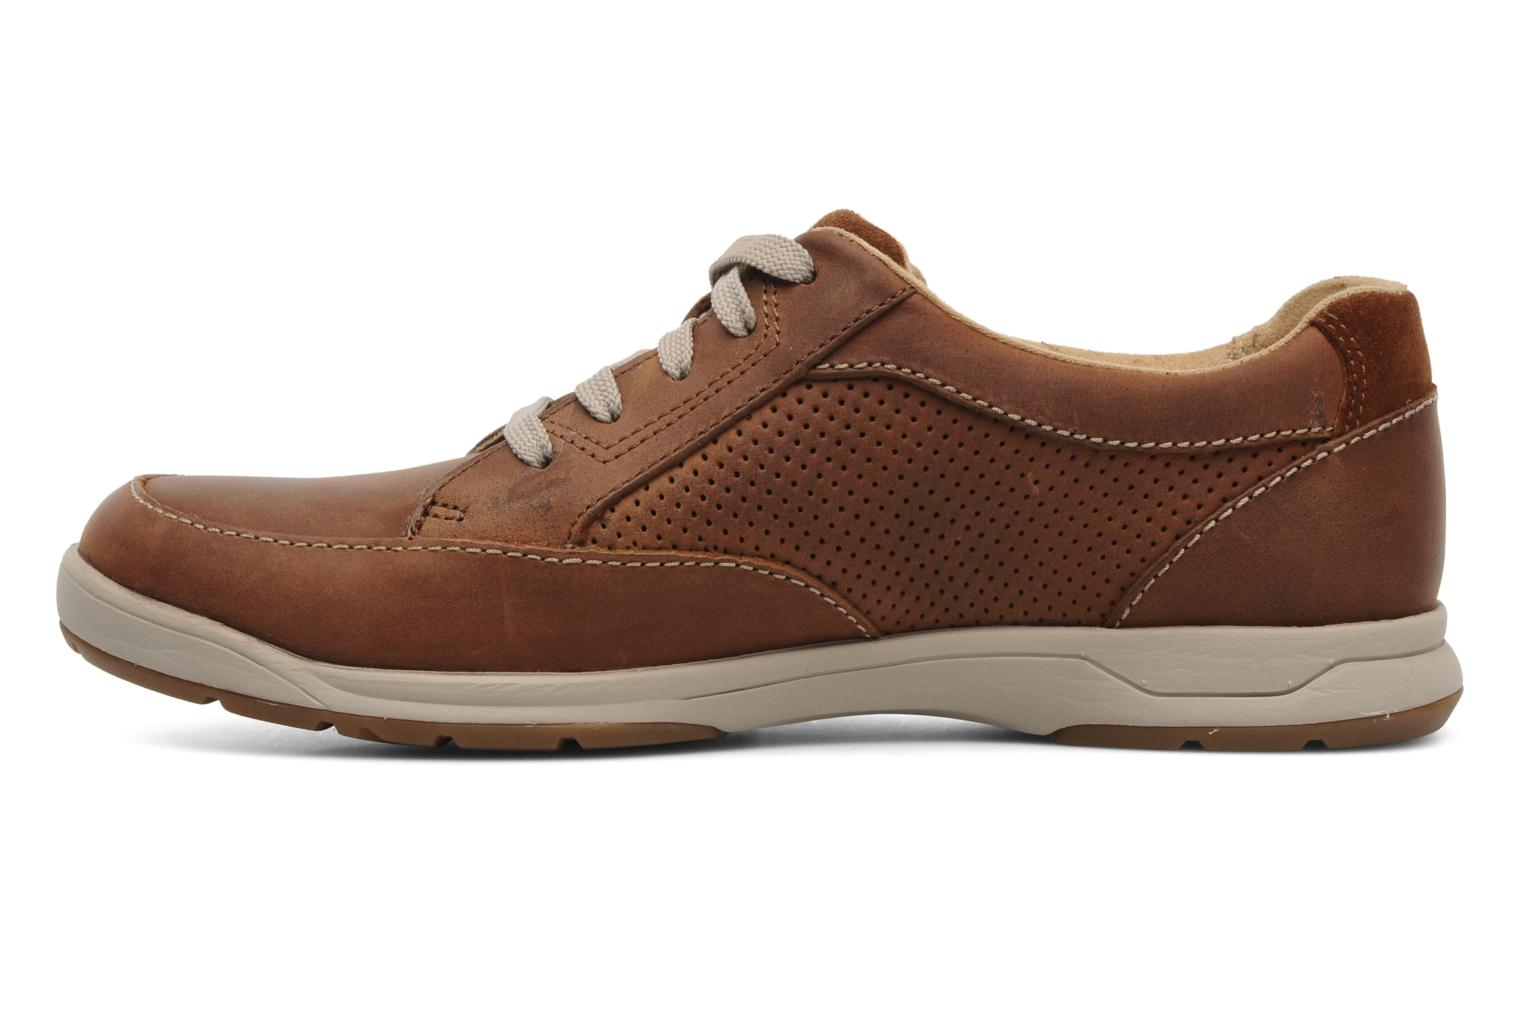 Stafford Park5 Tan Leather